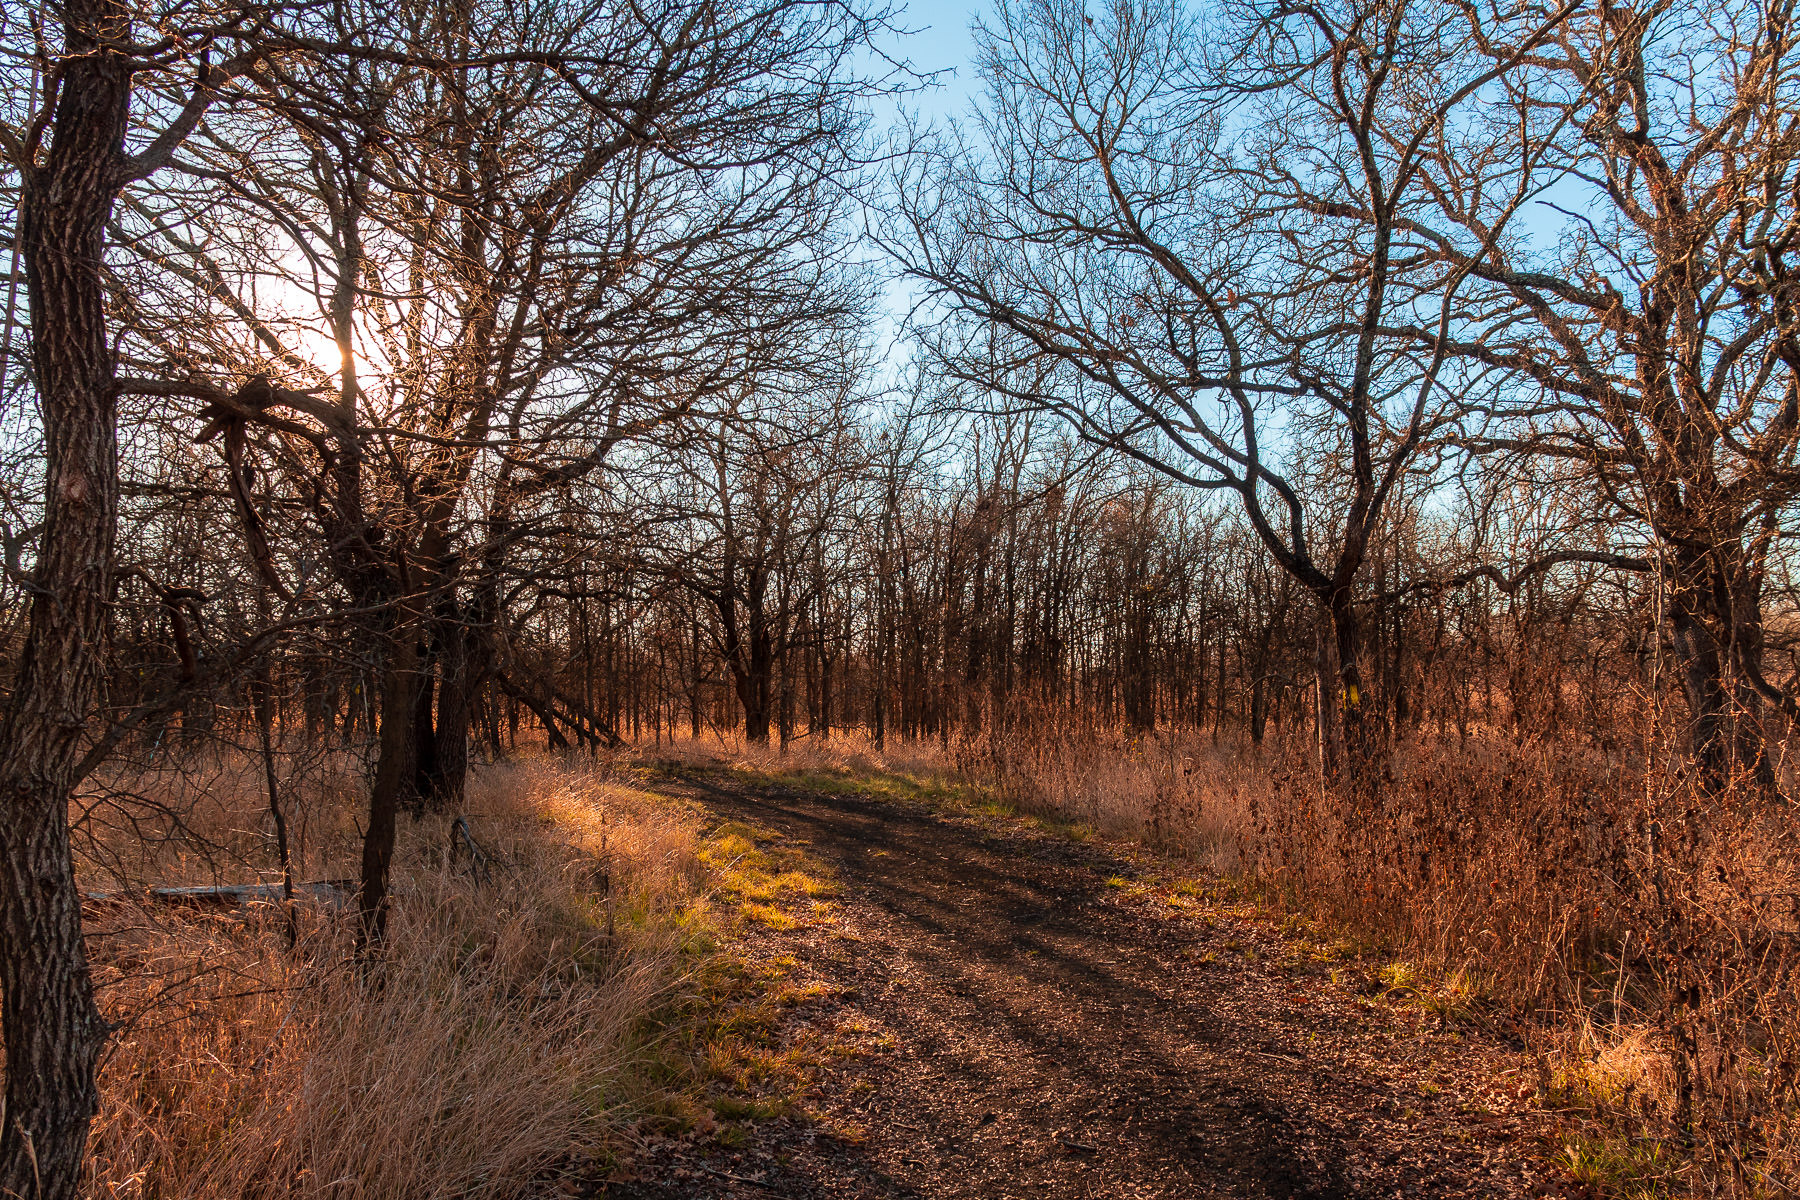 The morning sun filters through trees at Texas' Hagerman National Wildlife Refuge.